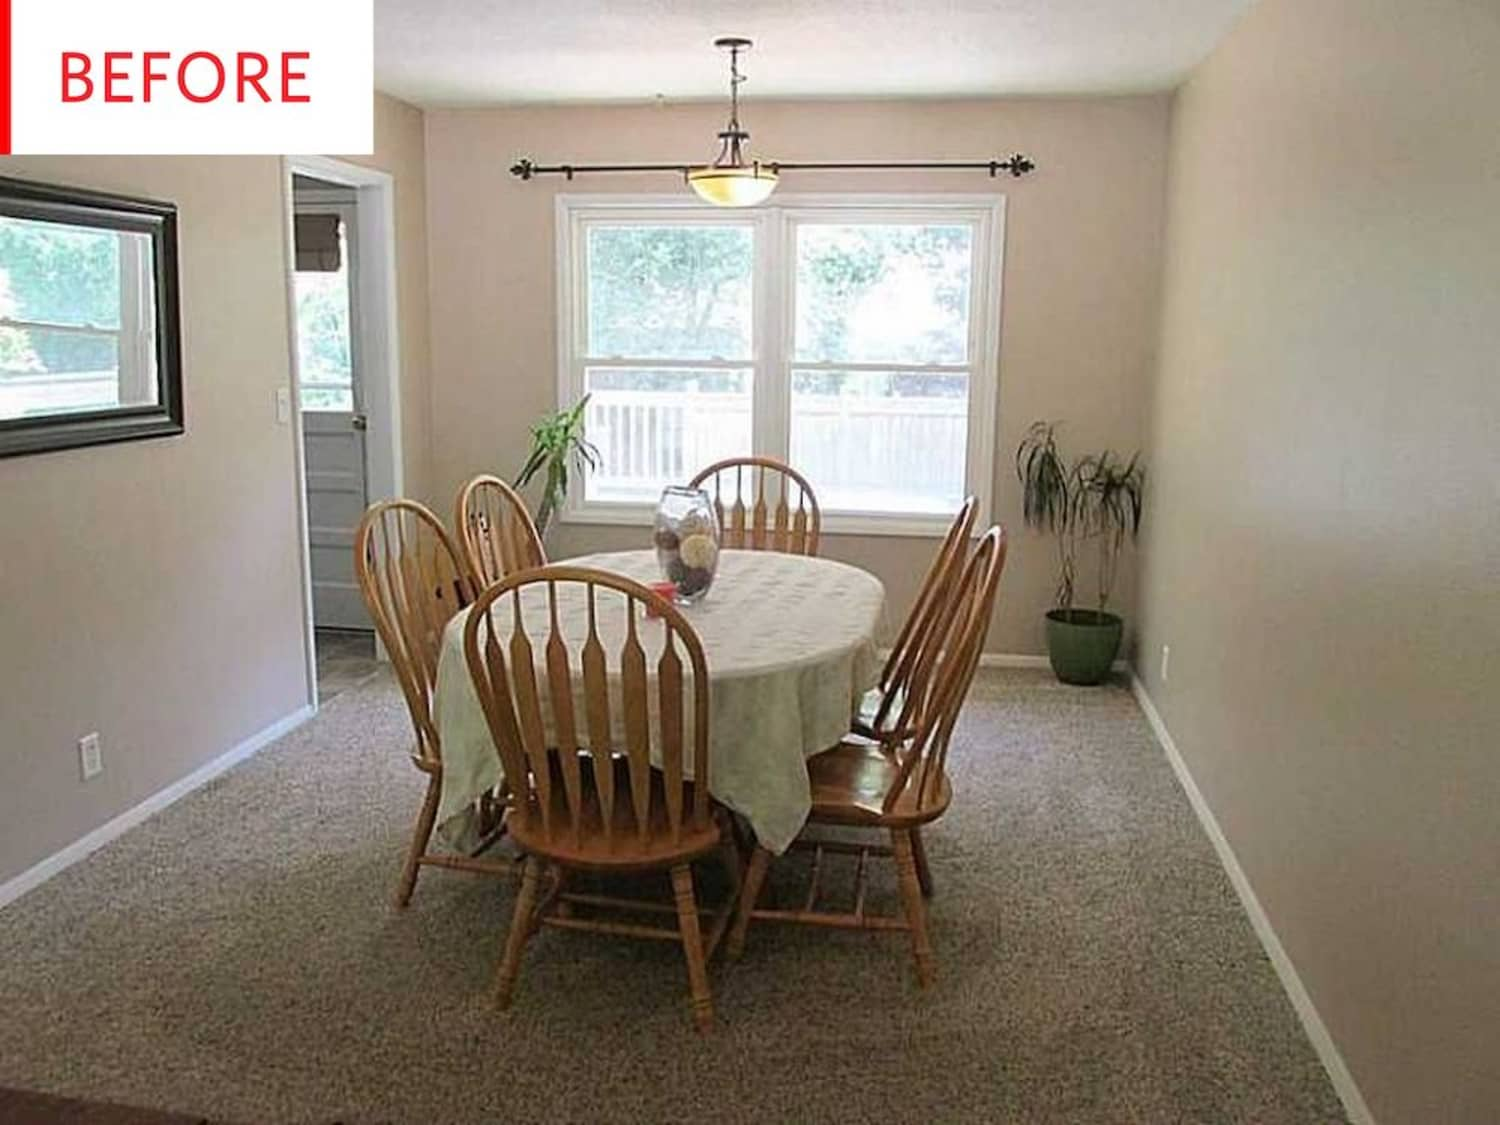 Before & After: You Won't Believe How Fantastically This Inexpensive Dining Room Refresh Came Together